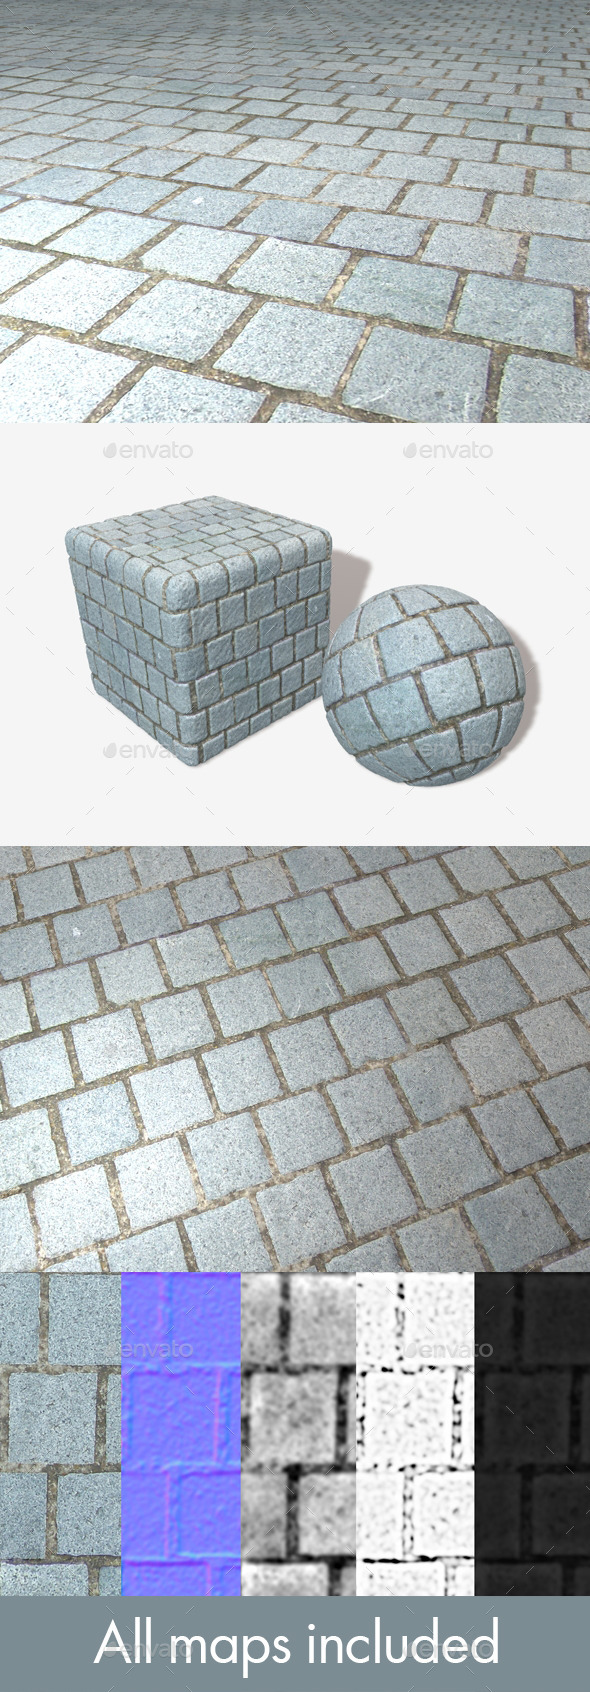 Grey Ground Bricks Seamless Texture - 3DOcean Item for Sale